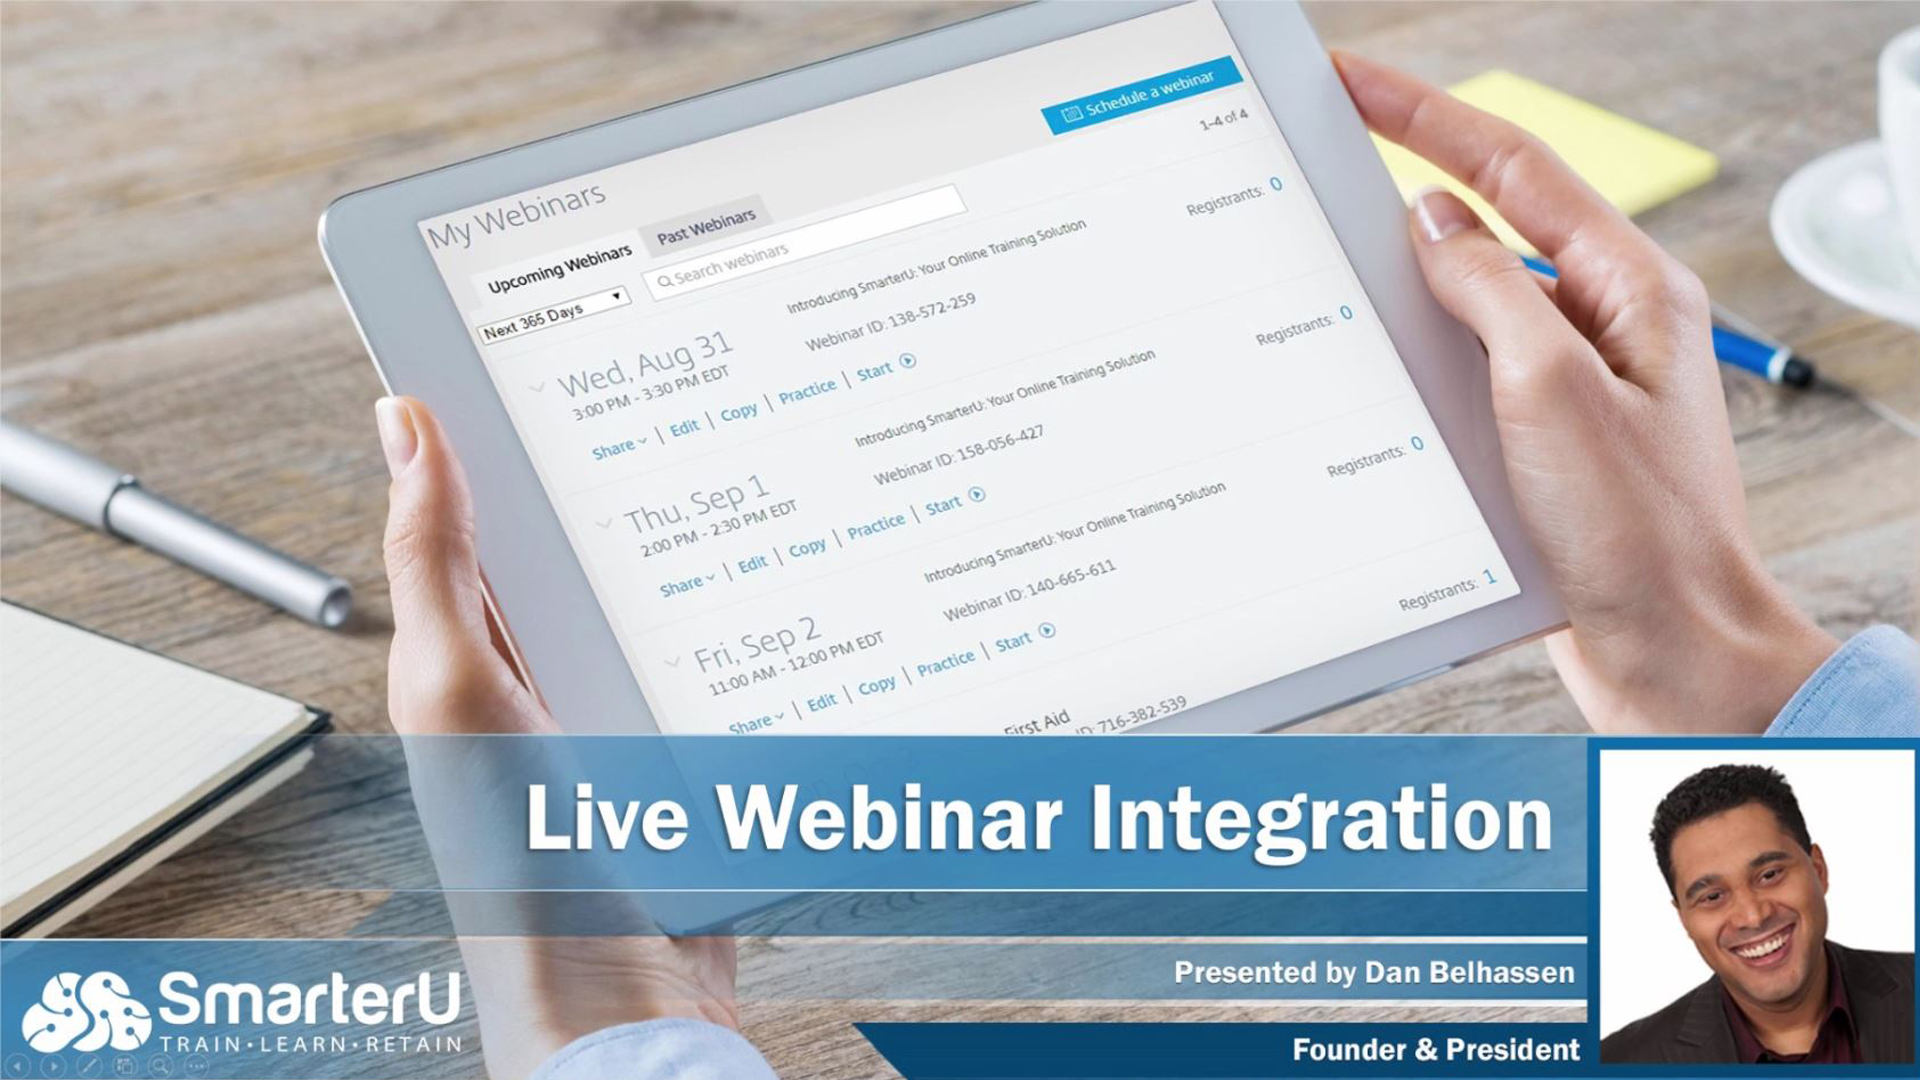 SmarterU LMS Live Webinar Integration - SmarterU LMS - Learning Management System